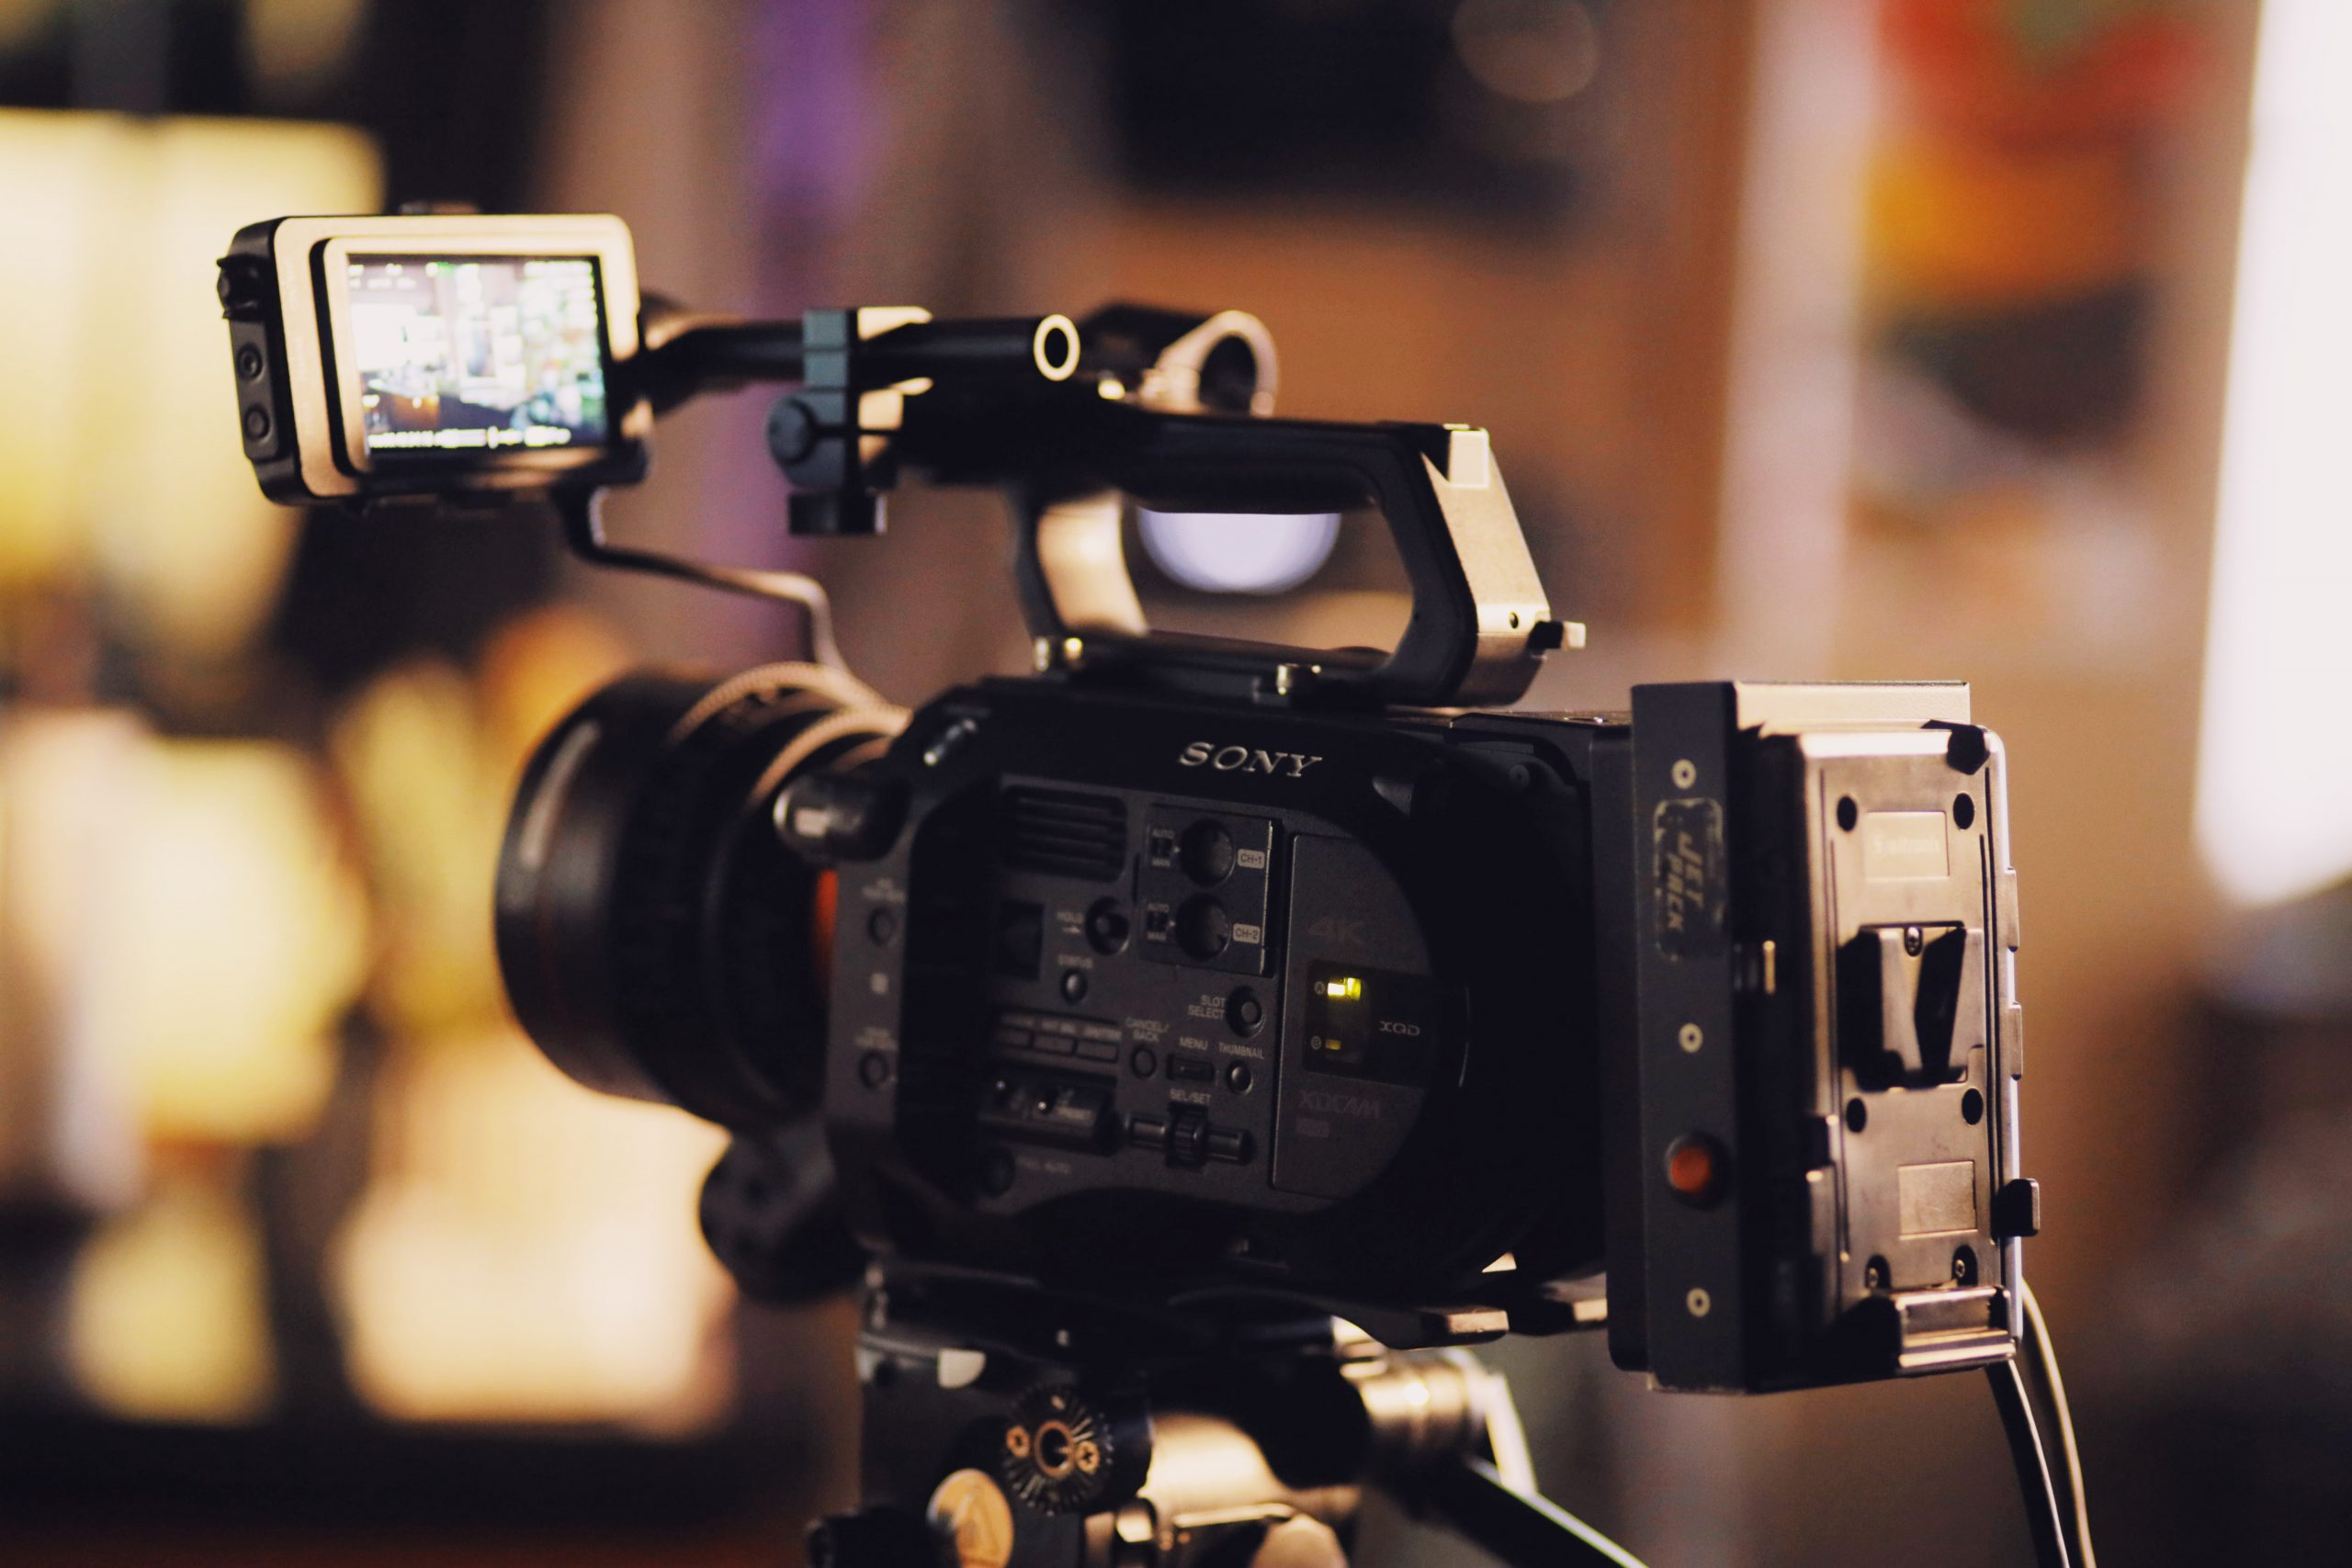 Ideal camera for promotional video